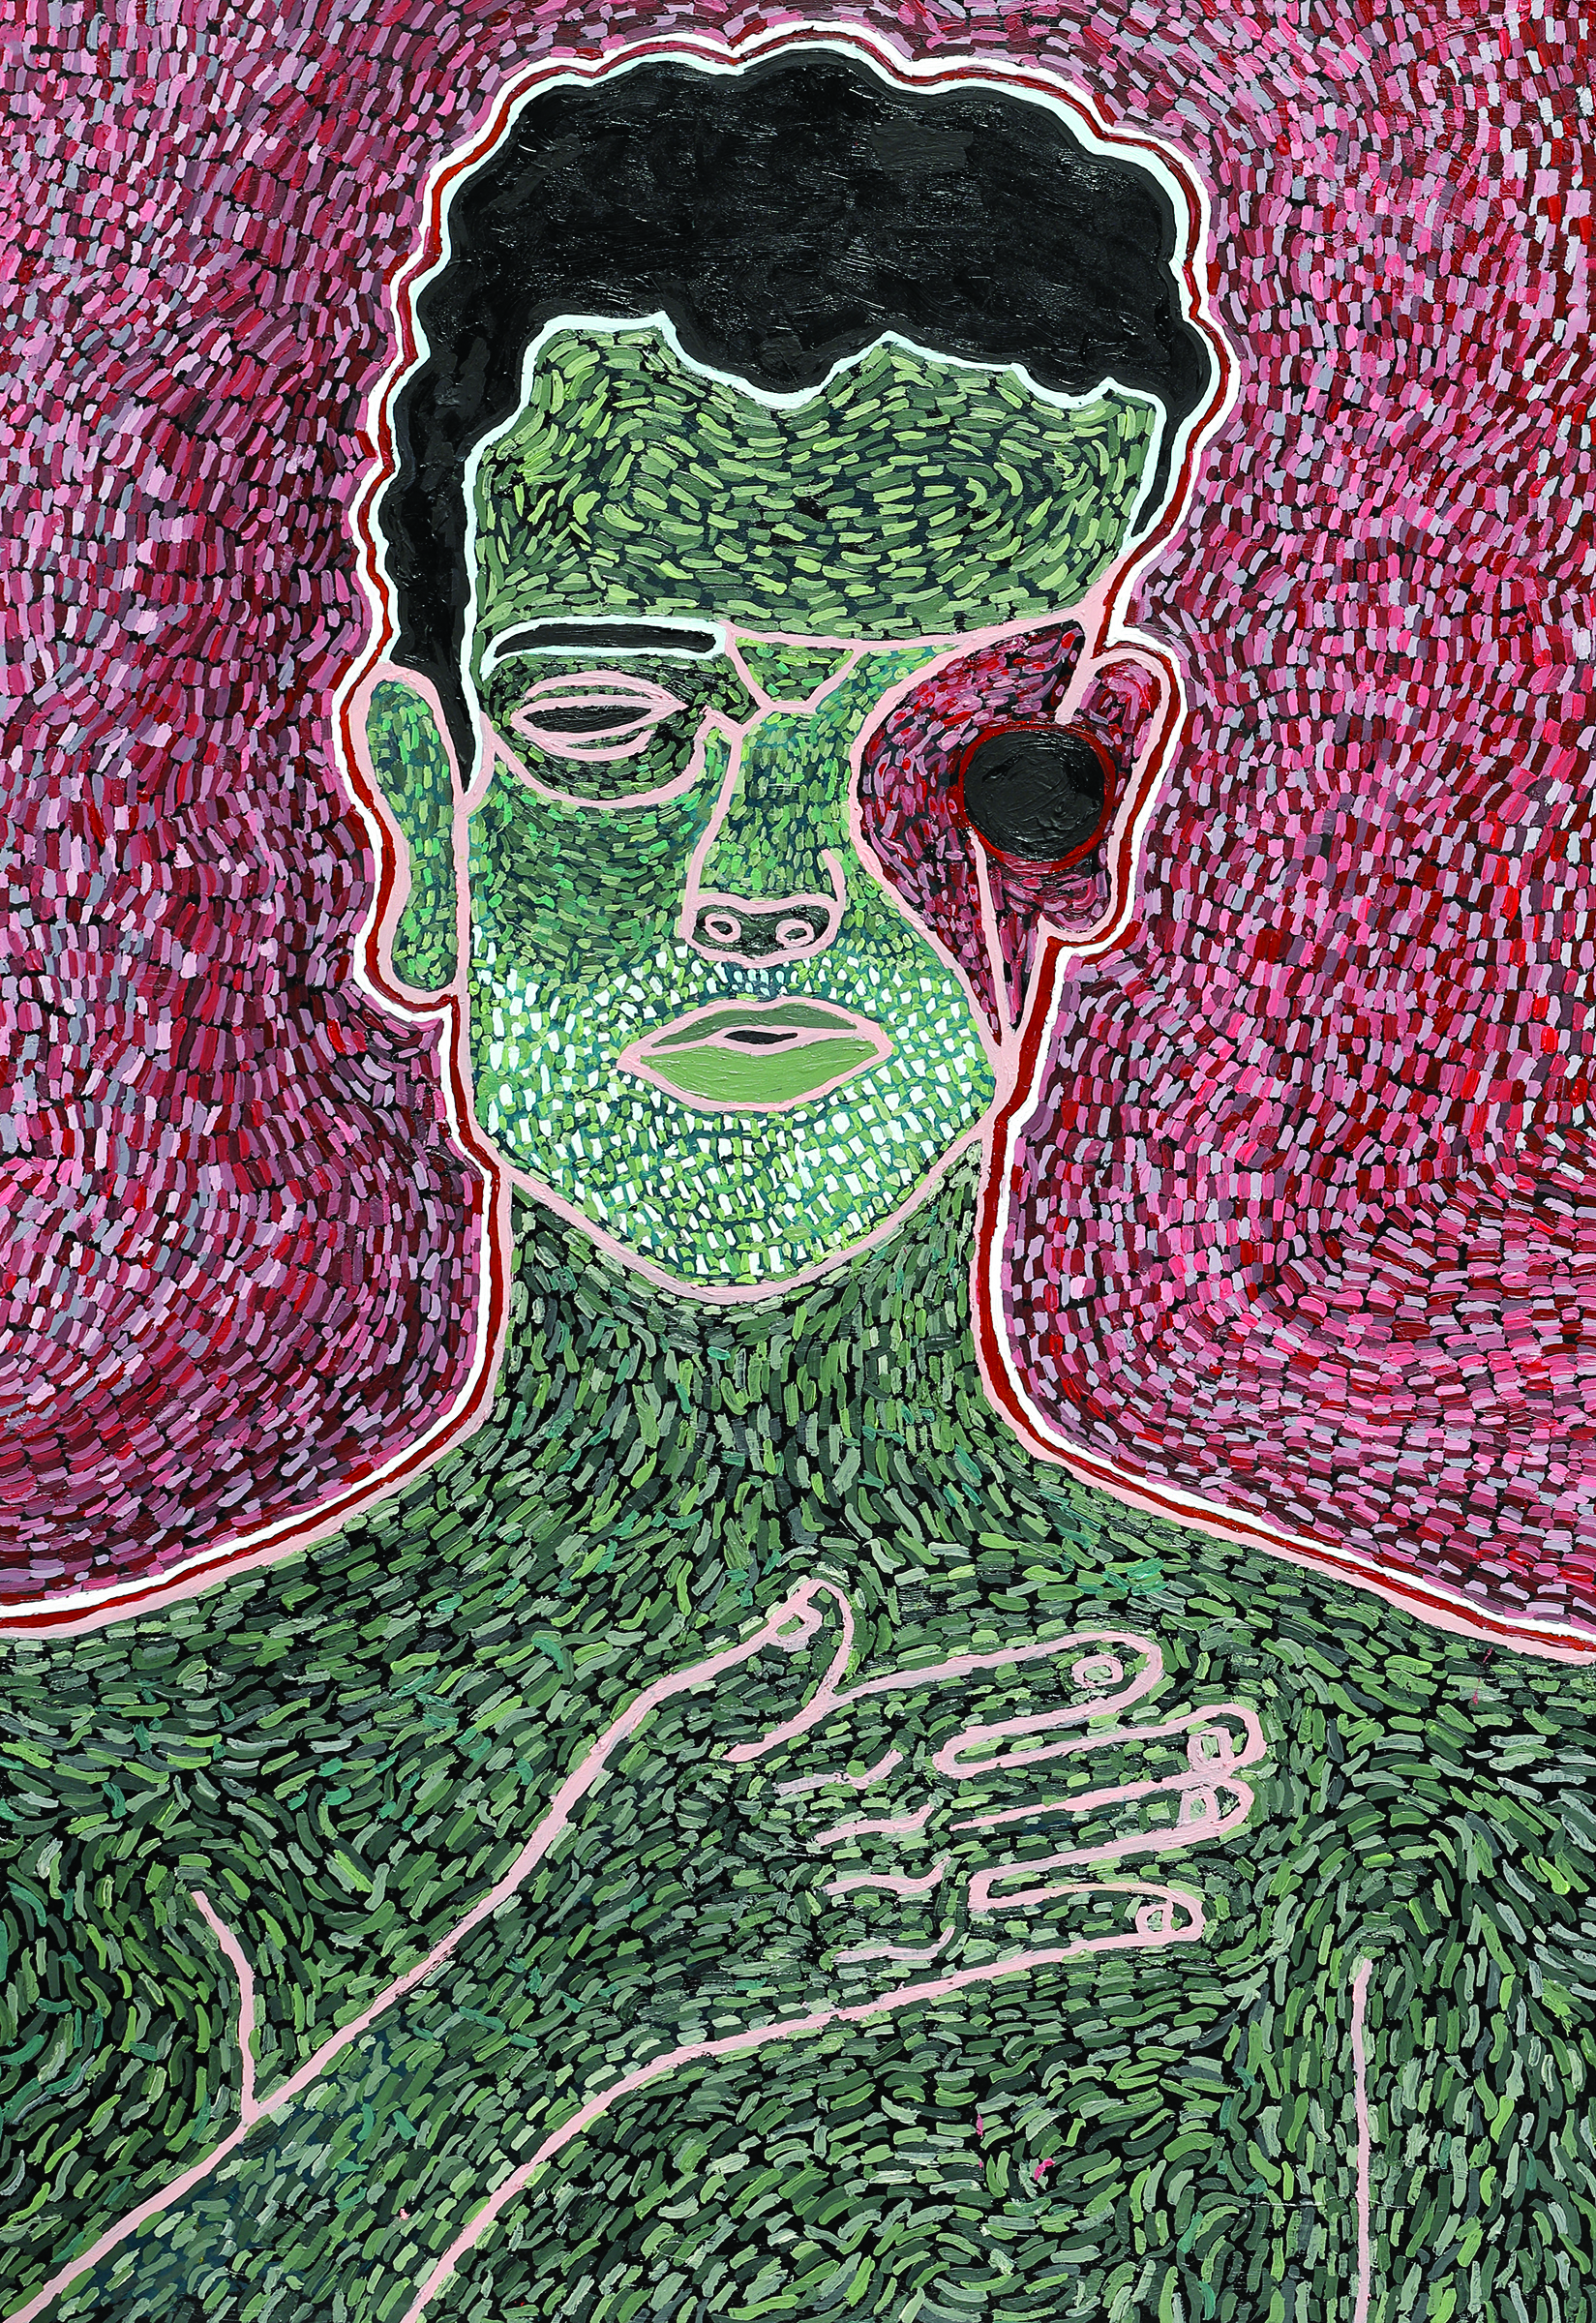 Ntephe_David_SelfPortrait.jpg